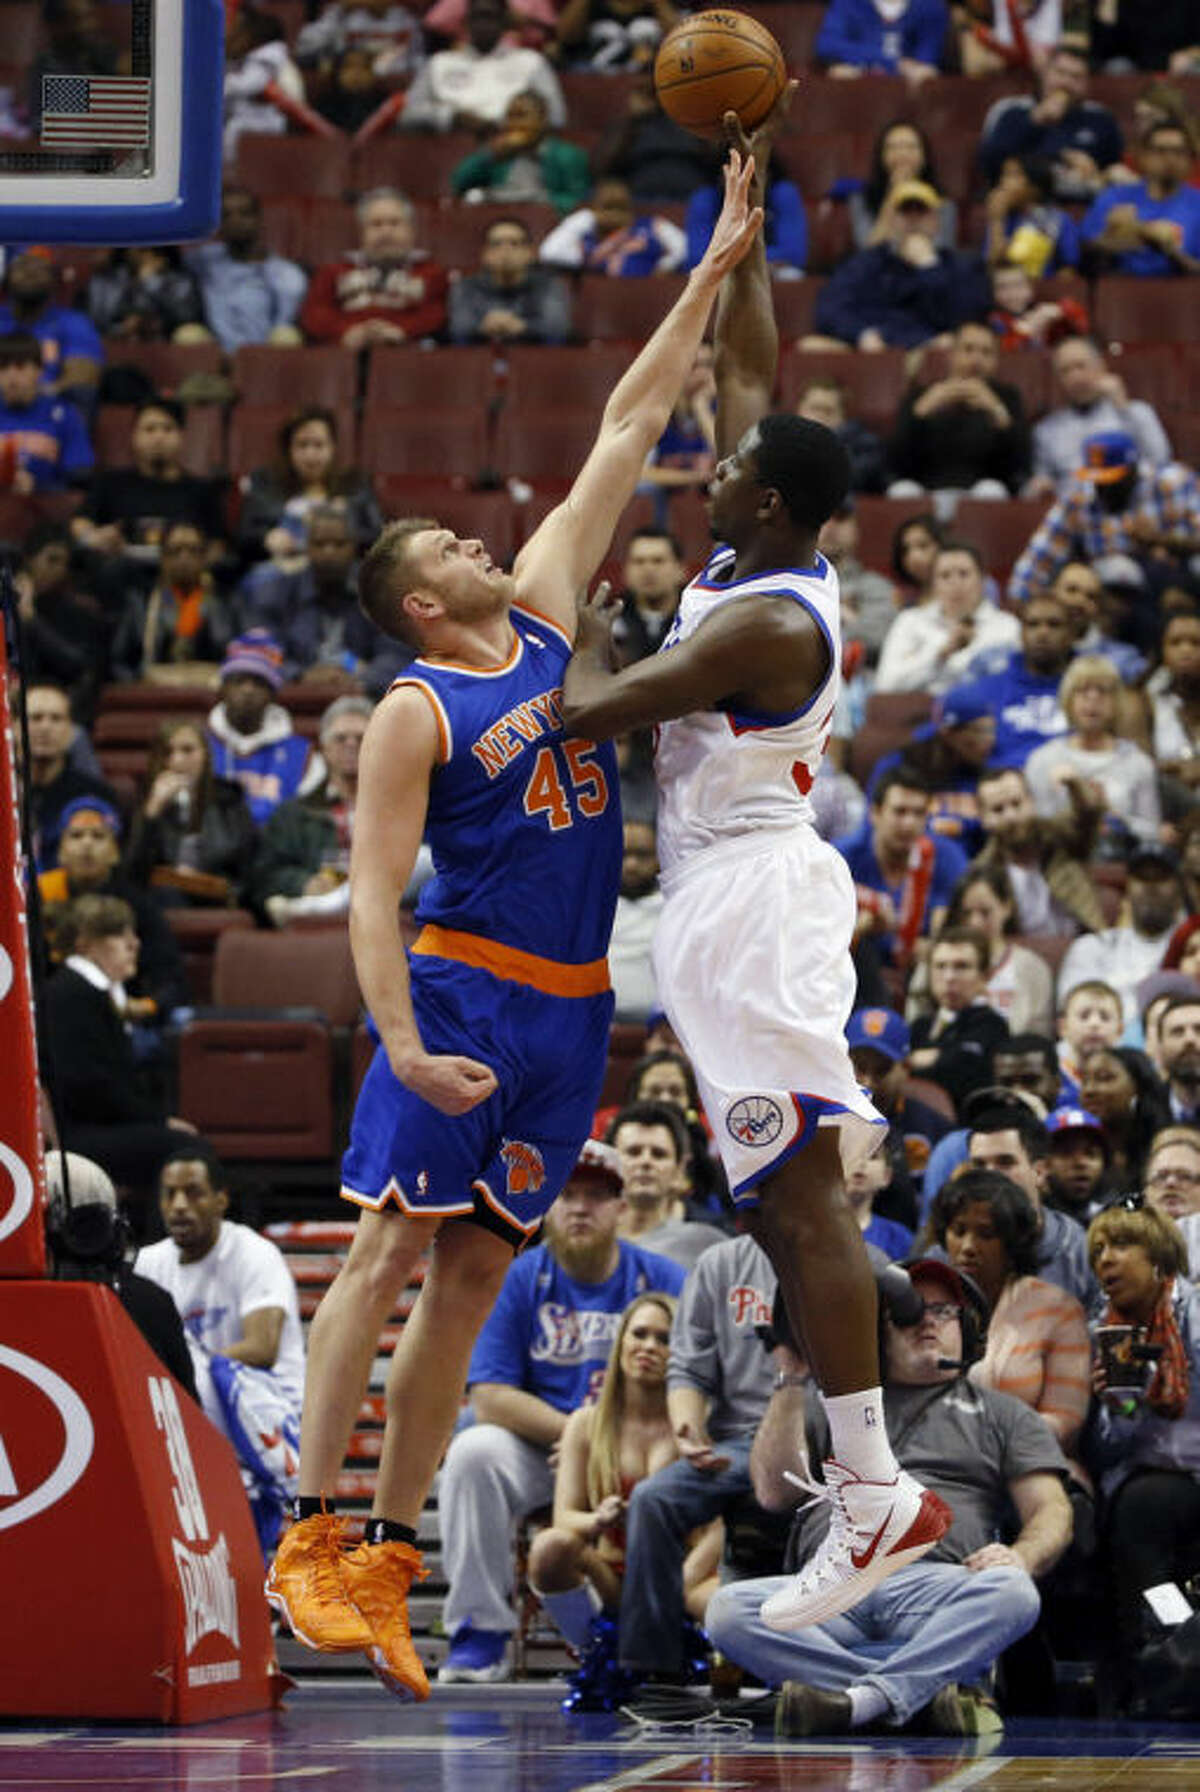 Philadelphia 76ers' Henry Sims, right, goes up for a shot against New York Knicks' Cole Aldrich during the first half of an NBA basketball game, Friday, March 21, 2014, in Philadelphia. (AP Photo/Matt Slocum)